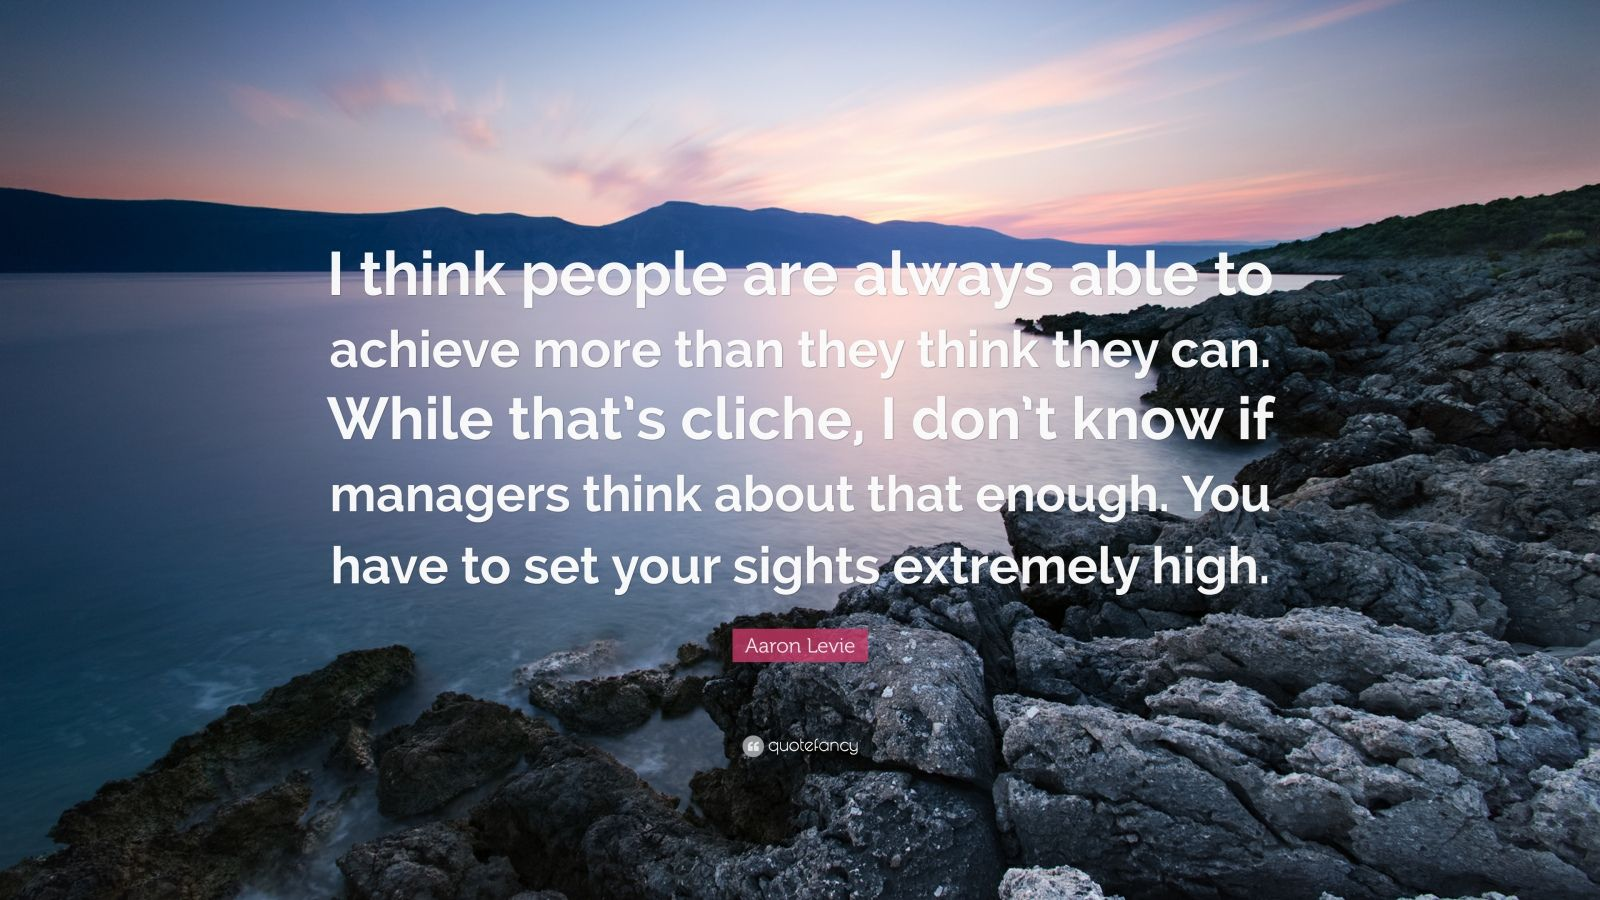 """Aaron Levie Quote: """"I think people are always able to achieve more than they think they can. While that's cliche, I don't know if managers think about that enough. You have to set your sights extremely high."""""""